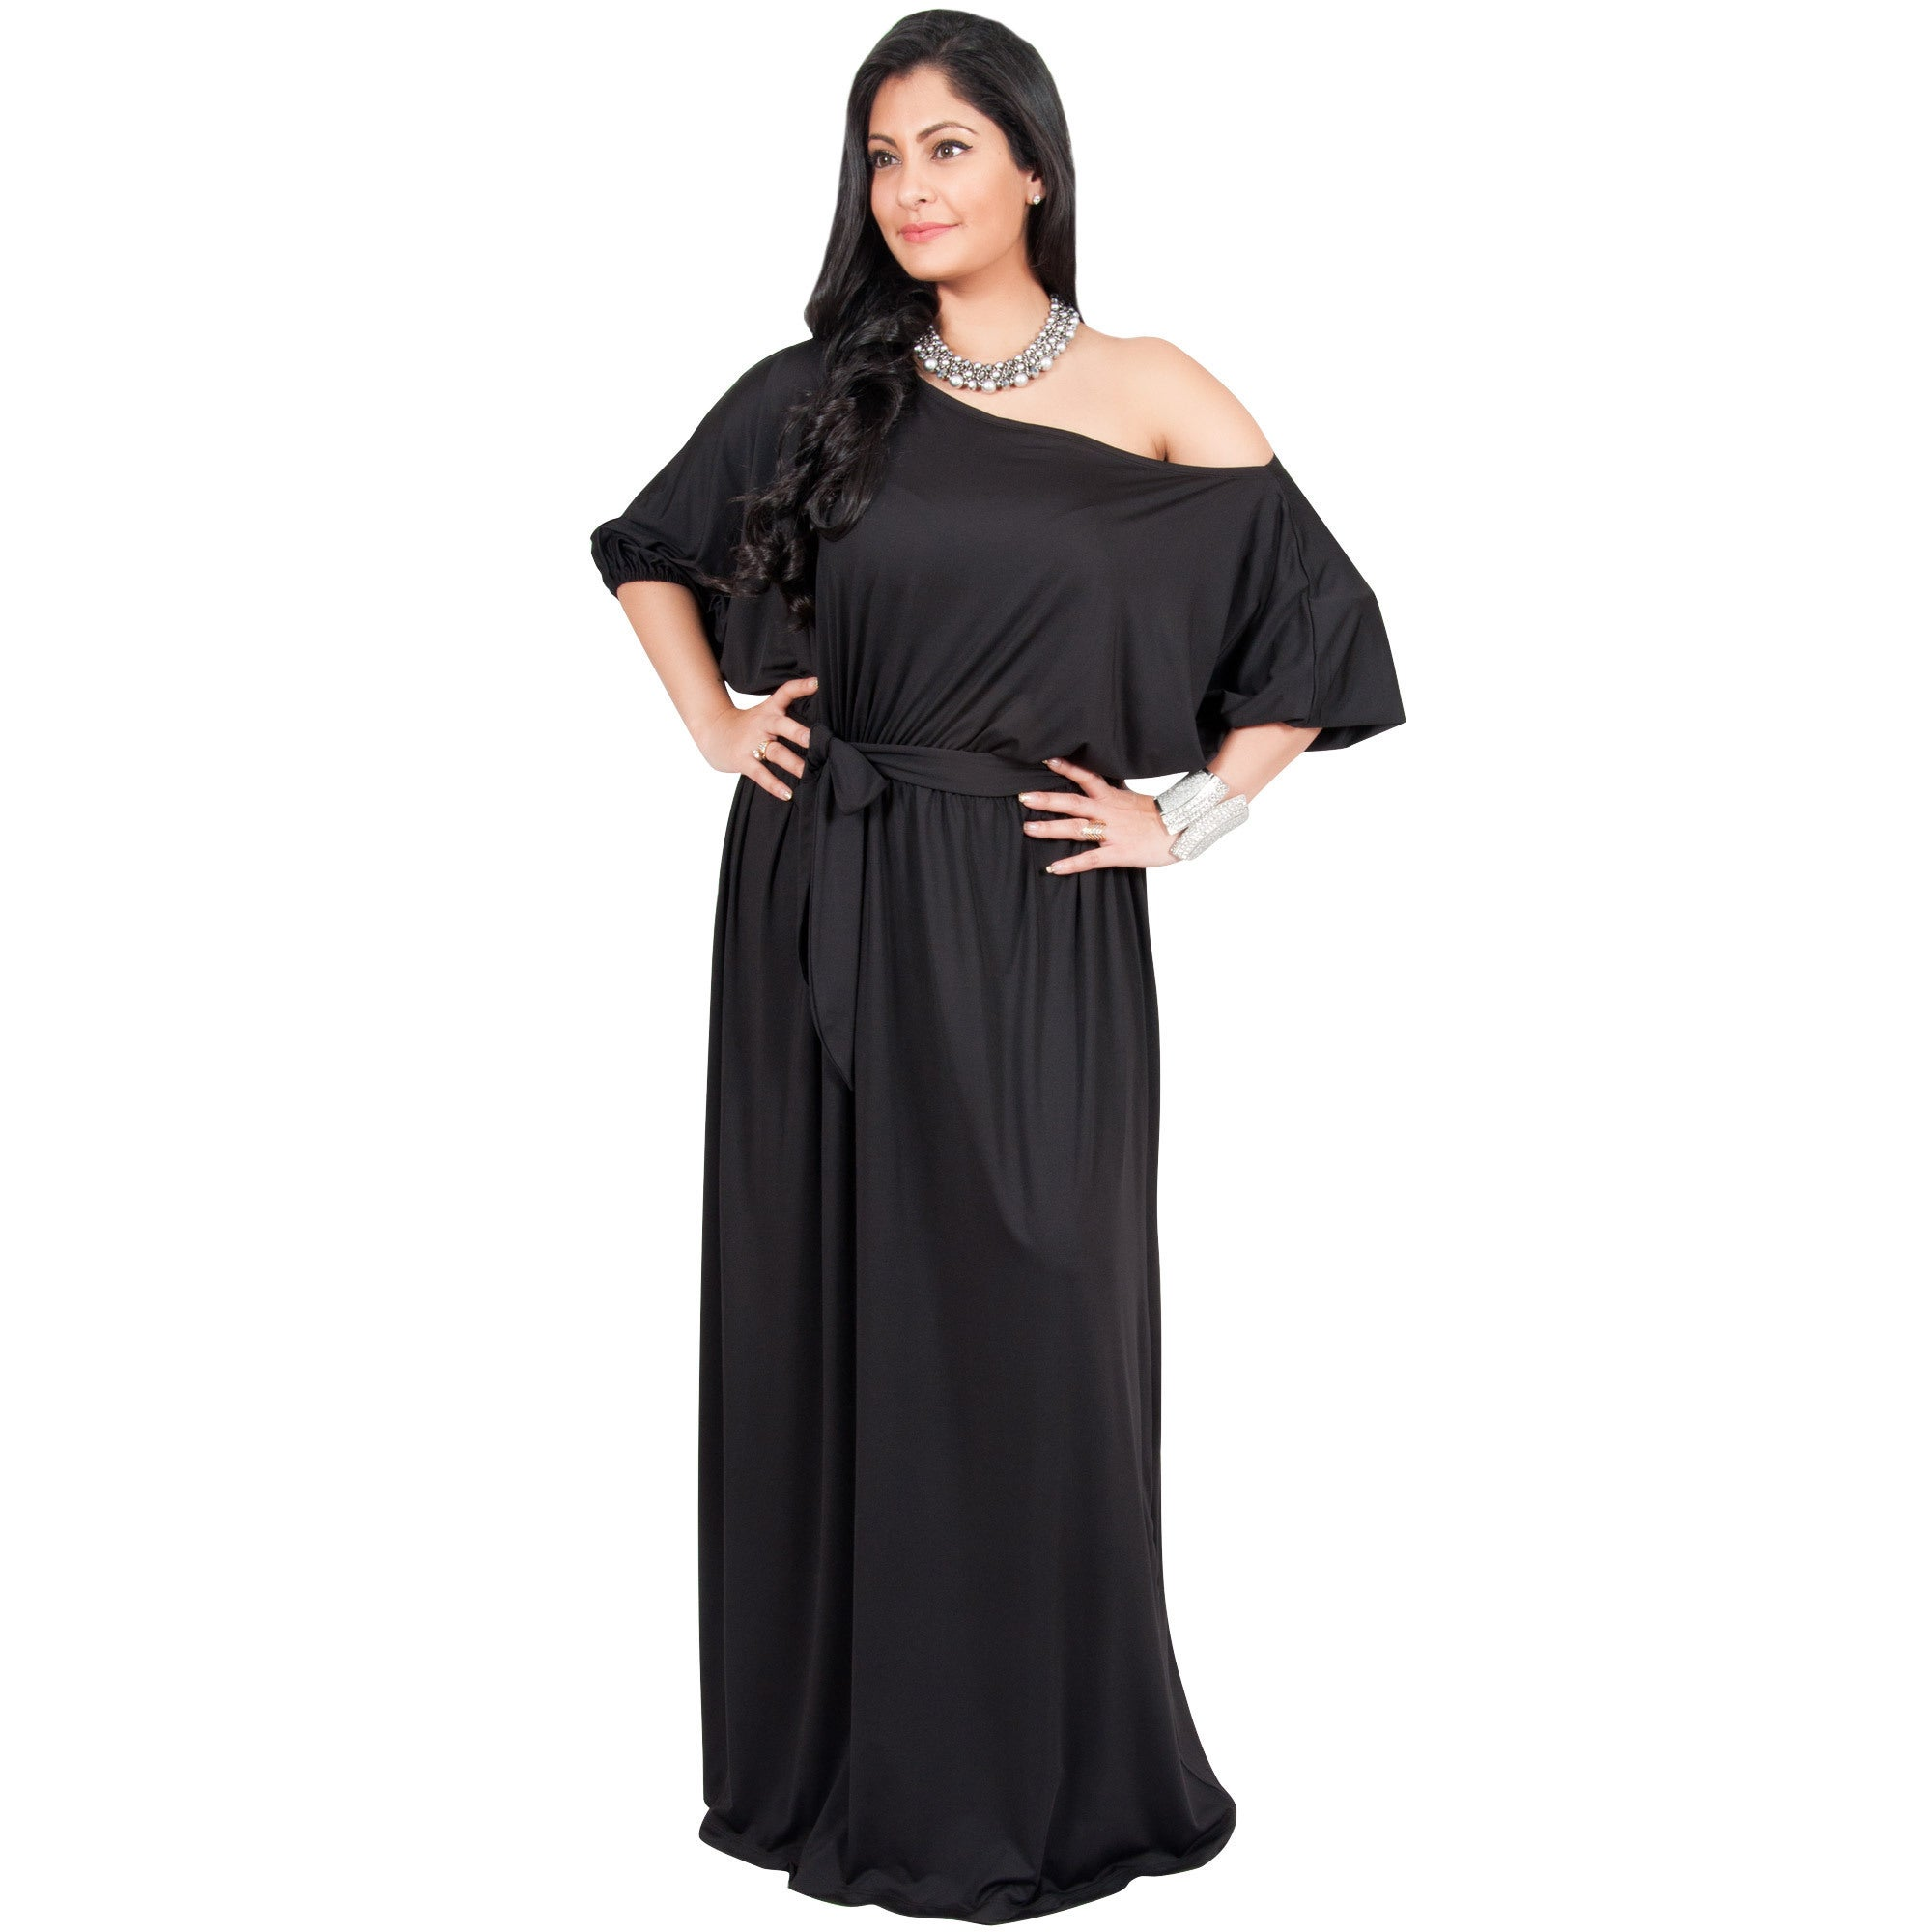 Global Adelyn & Vivian Women's Polyester Plus-size Long O...